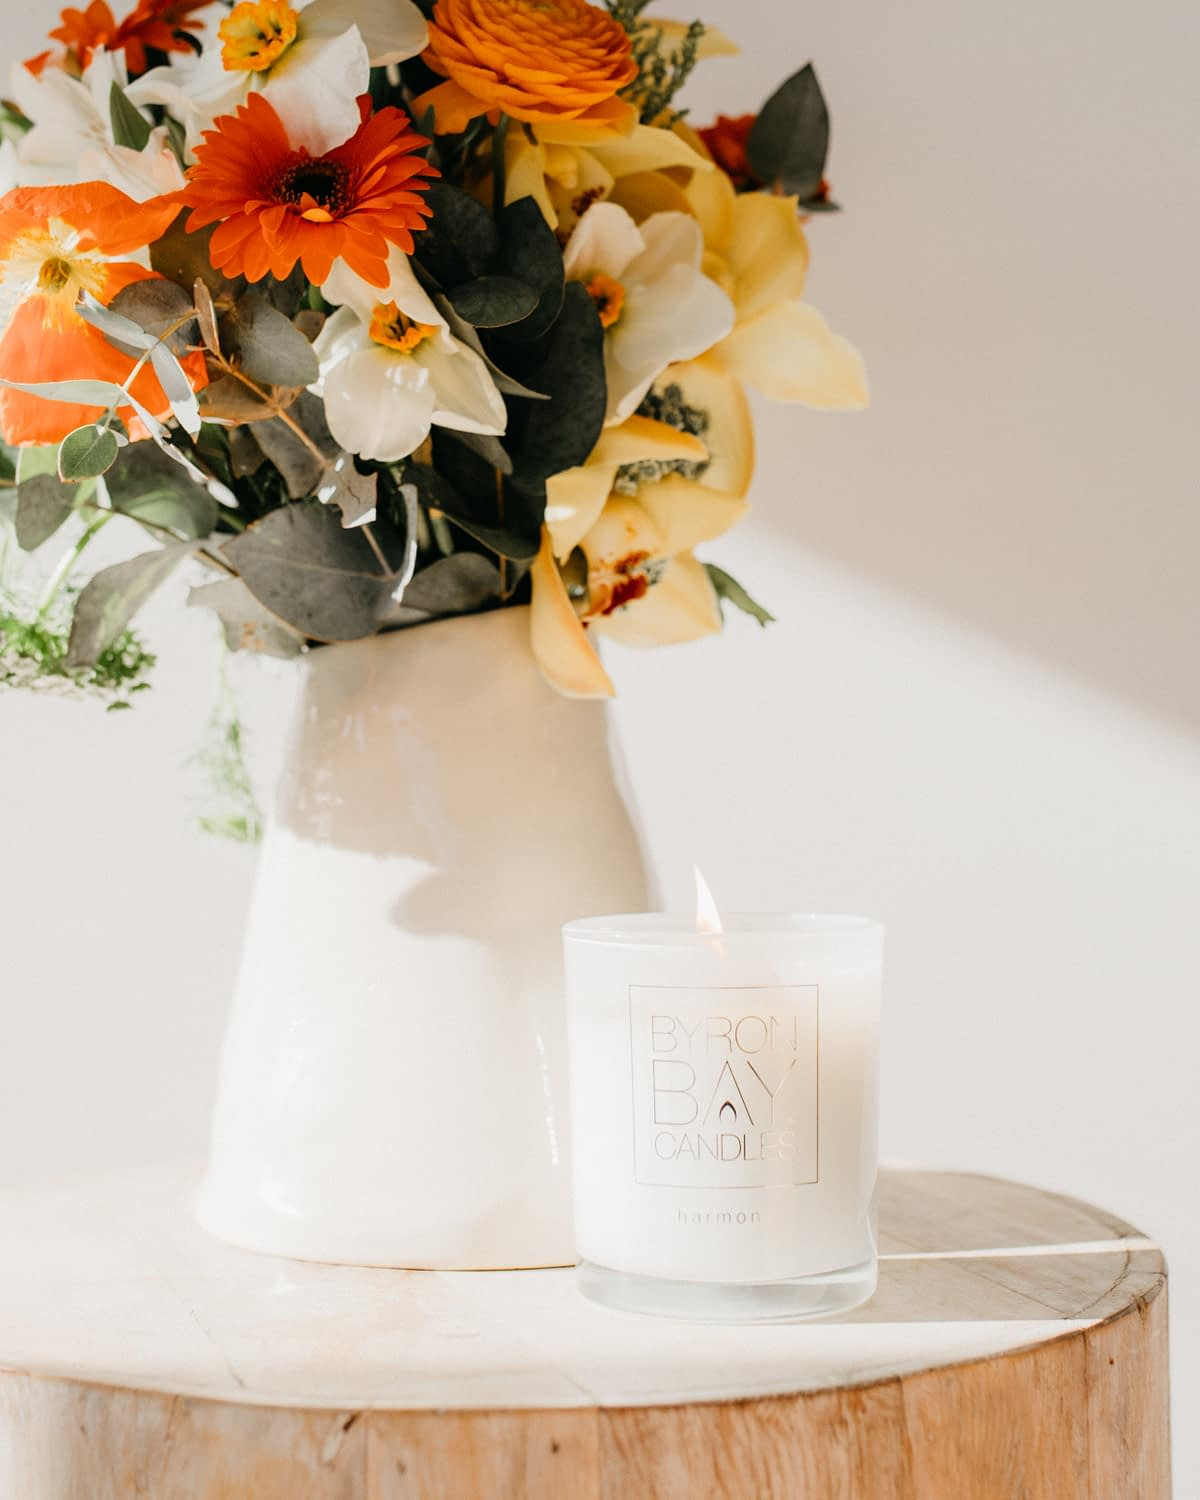 Byron_Bay_Candles_50_hour_size